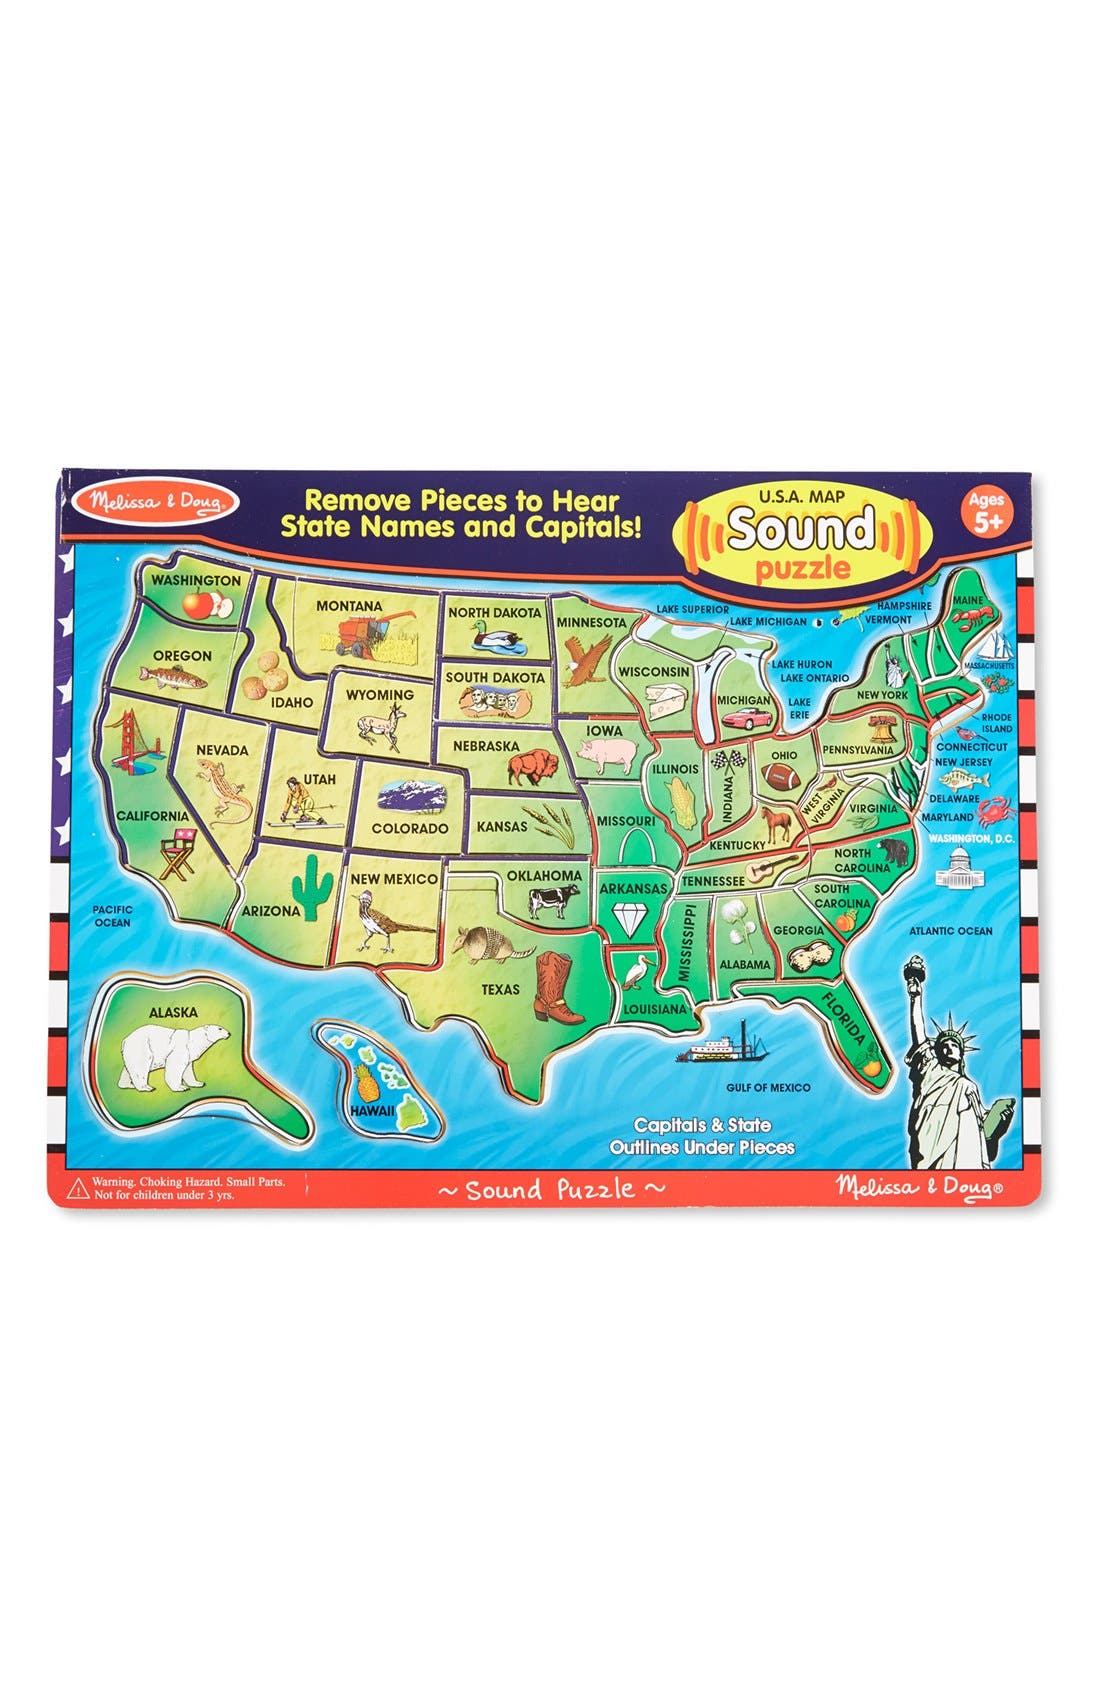 Alternate Image 1 Selected - Melissa & Doug USA Sound Puzzle